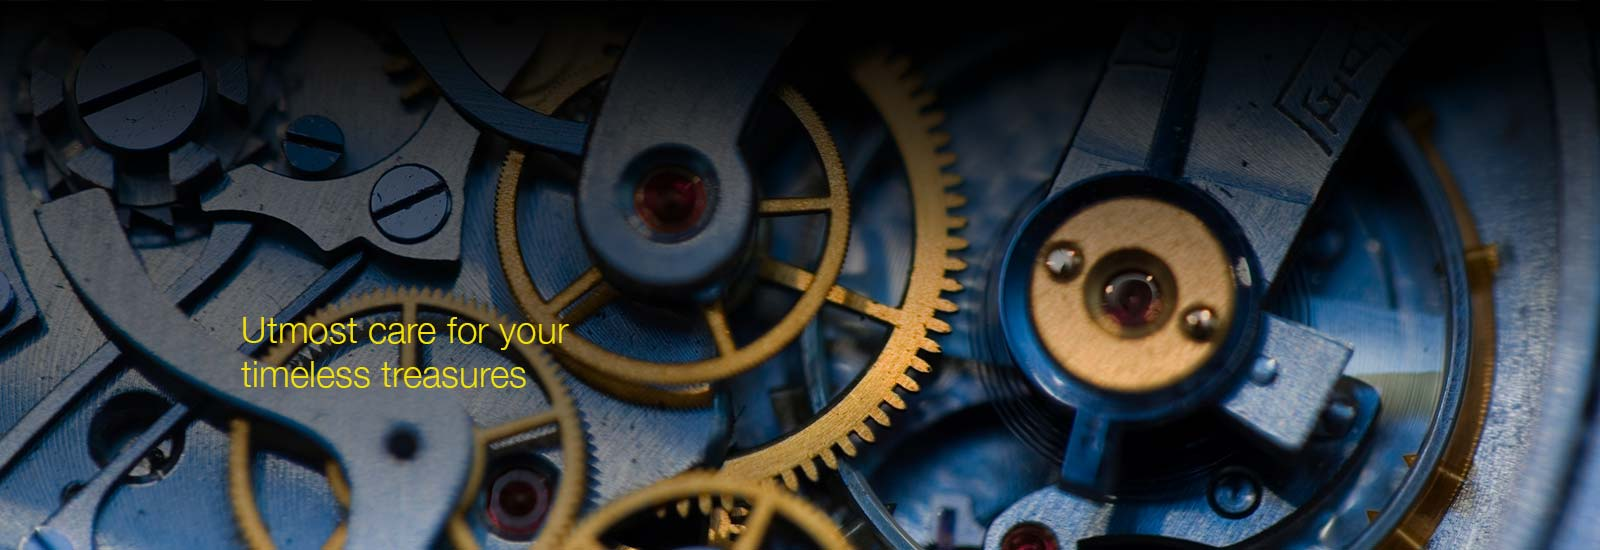 timeandme-maintenance-services-banner